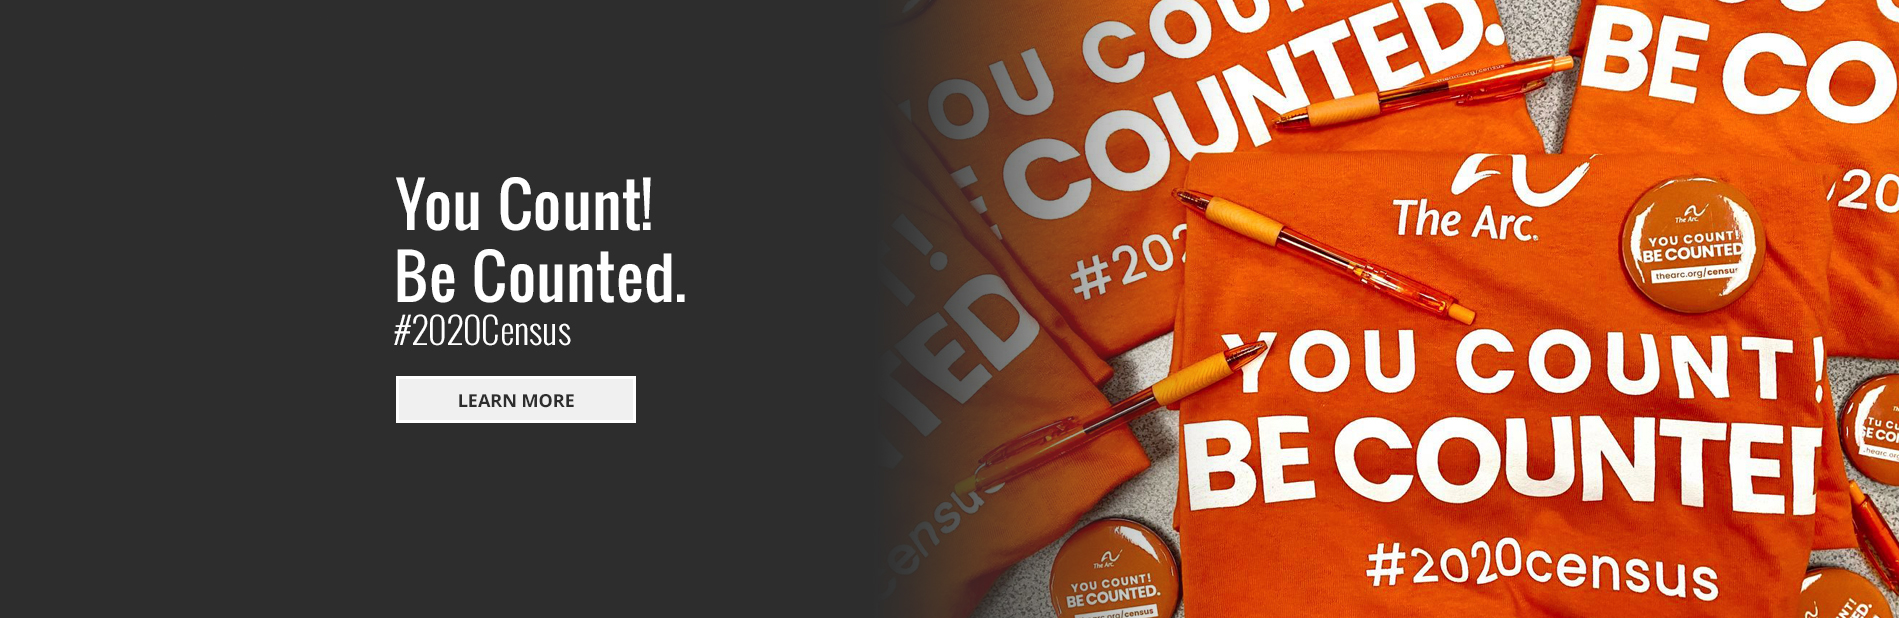 You Count! Be Counted. #2020Census - Follow the link to learn more!